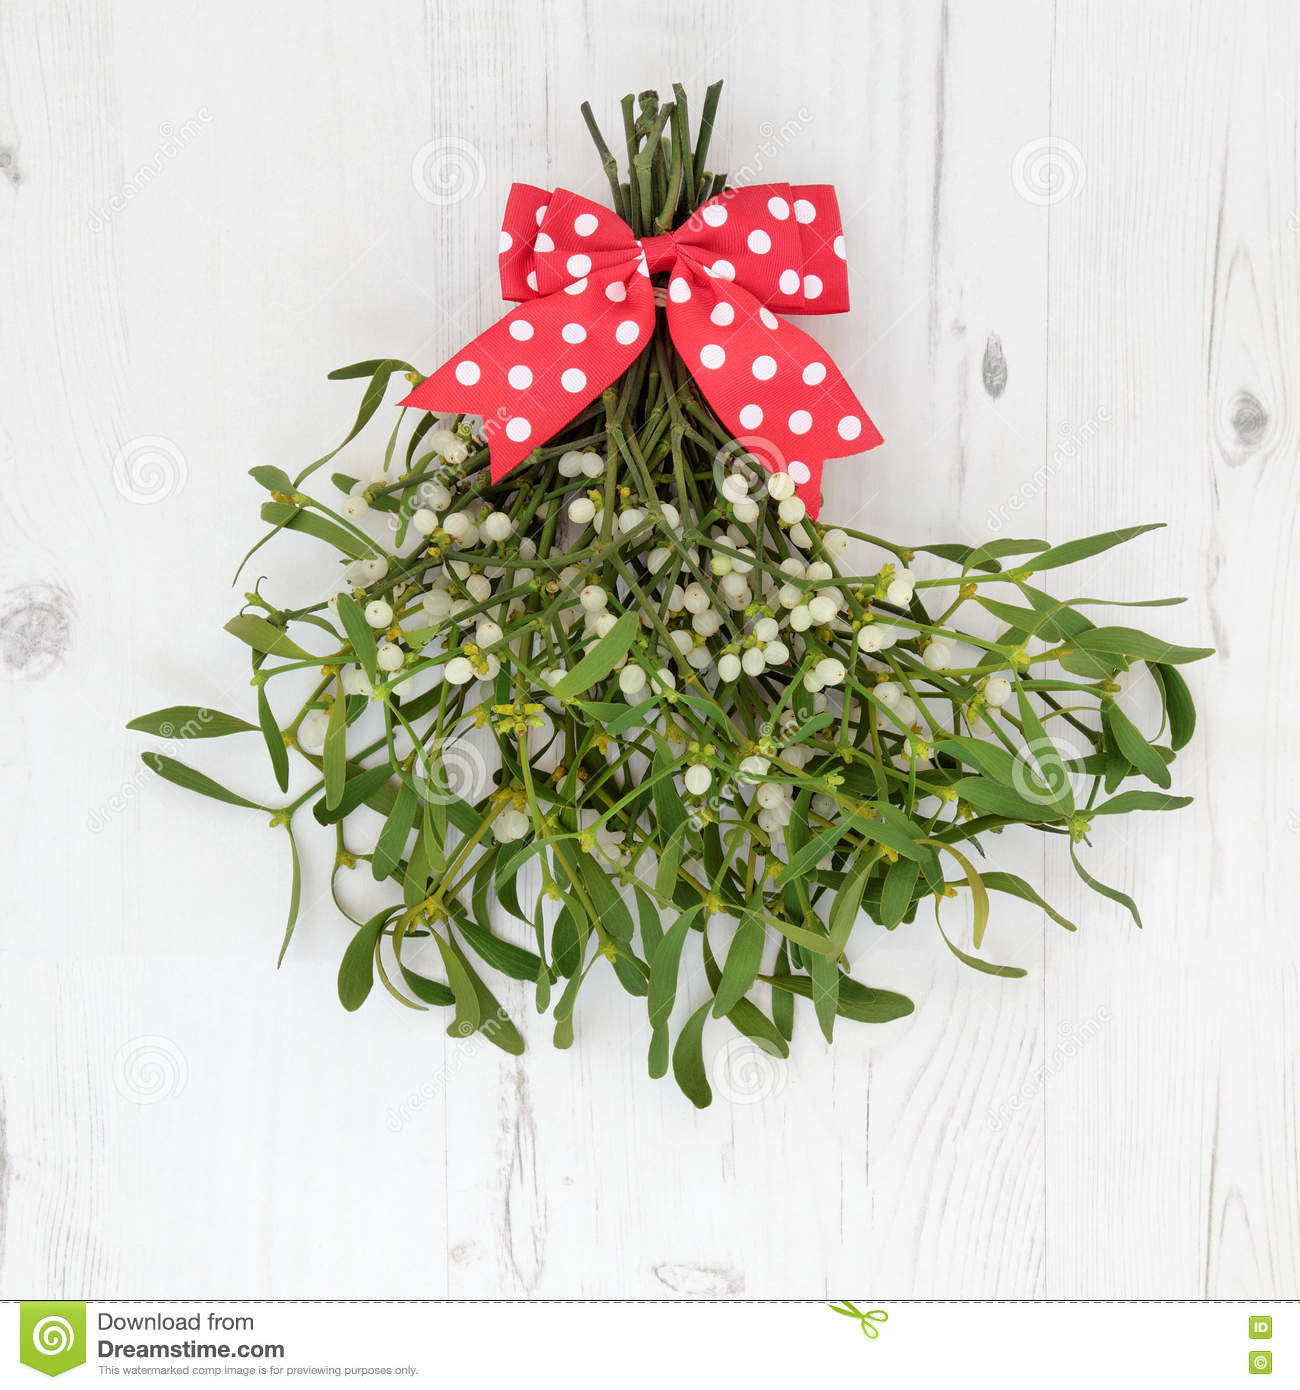 christmas mistletoe decoration - Mistletoe Christmas